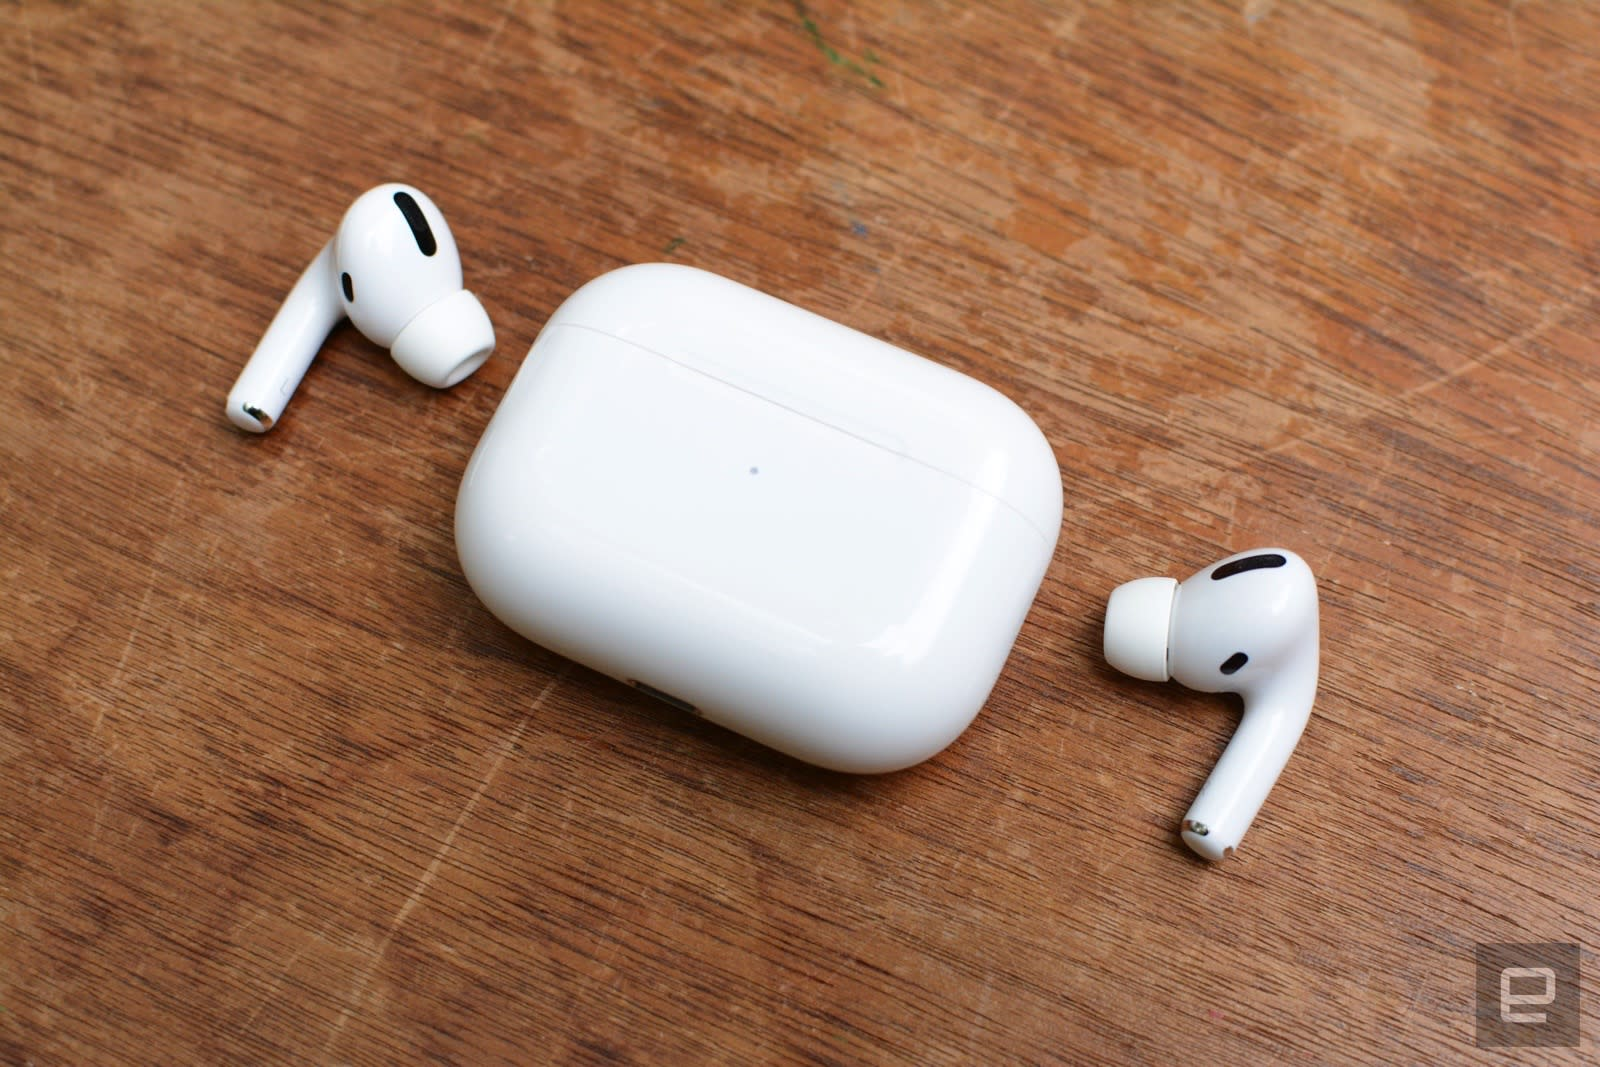 Apple's AirPods Pro fall to $180 at Amazon - Engadget